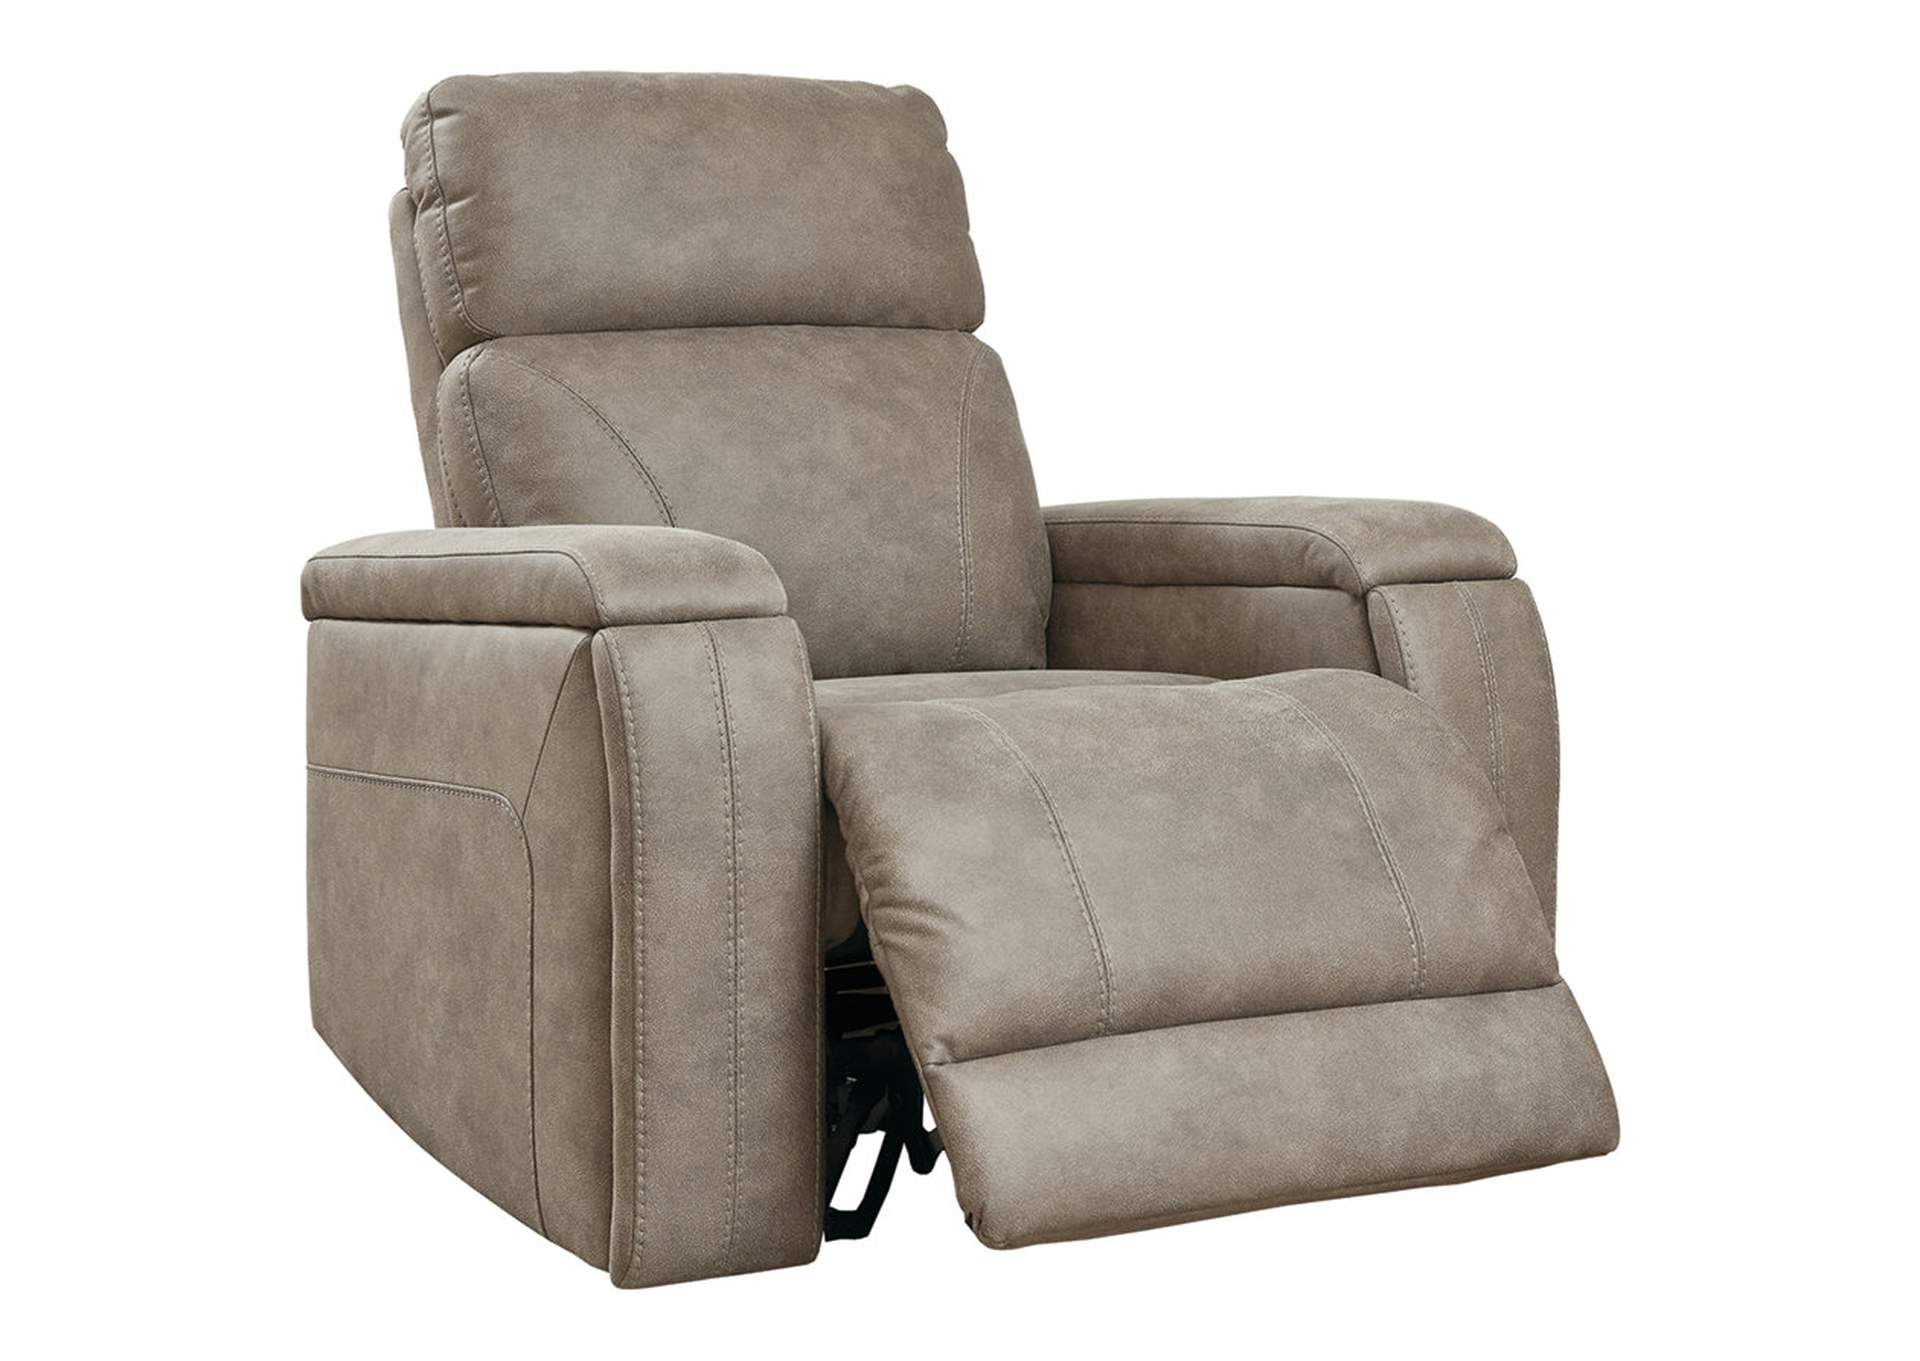 Rowlett Power Recliner,Signature Design By Ashley